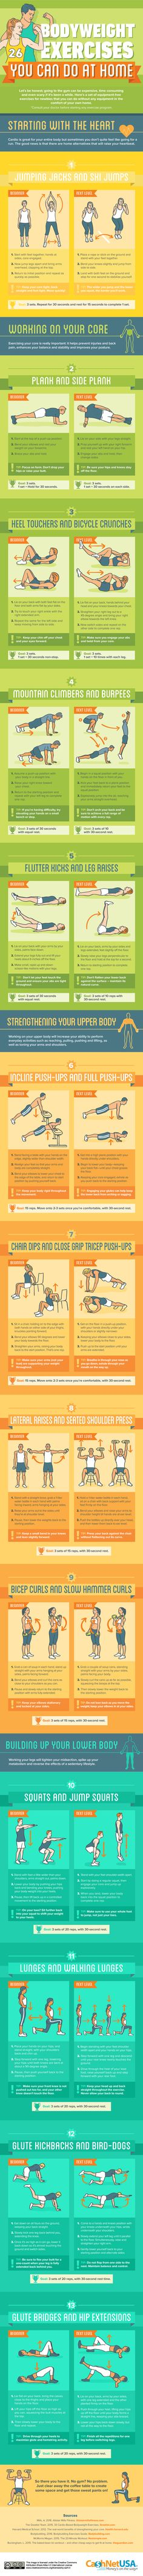 26 body weight exercises you can do at home #infographic #Health #Fitness #Exercise